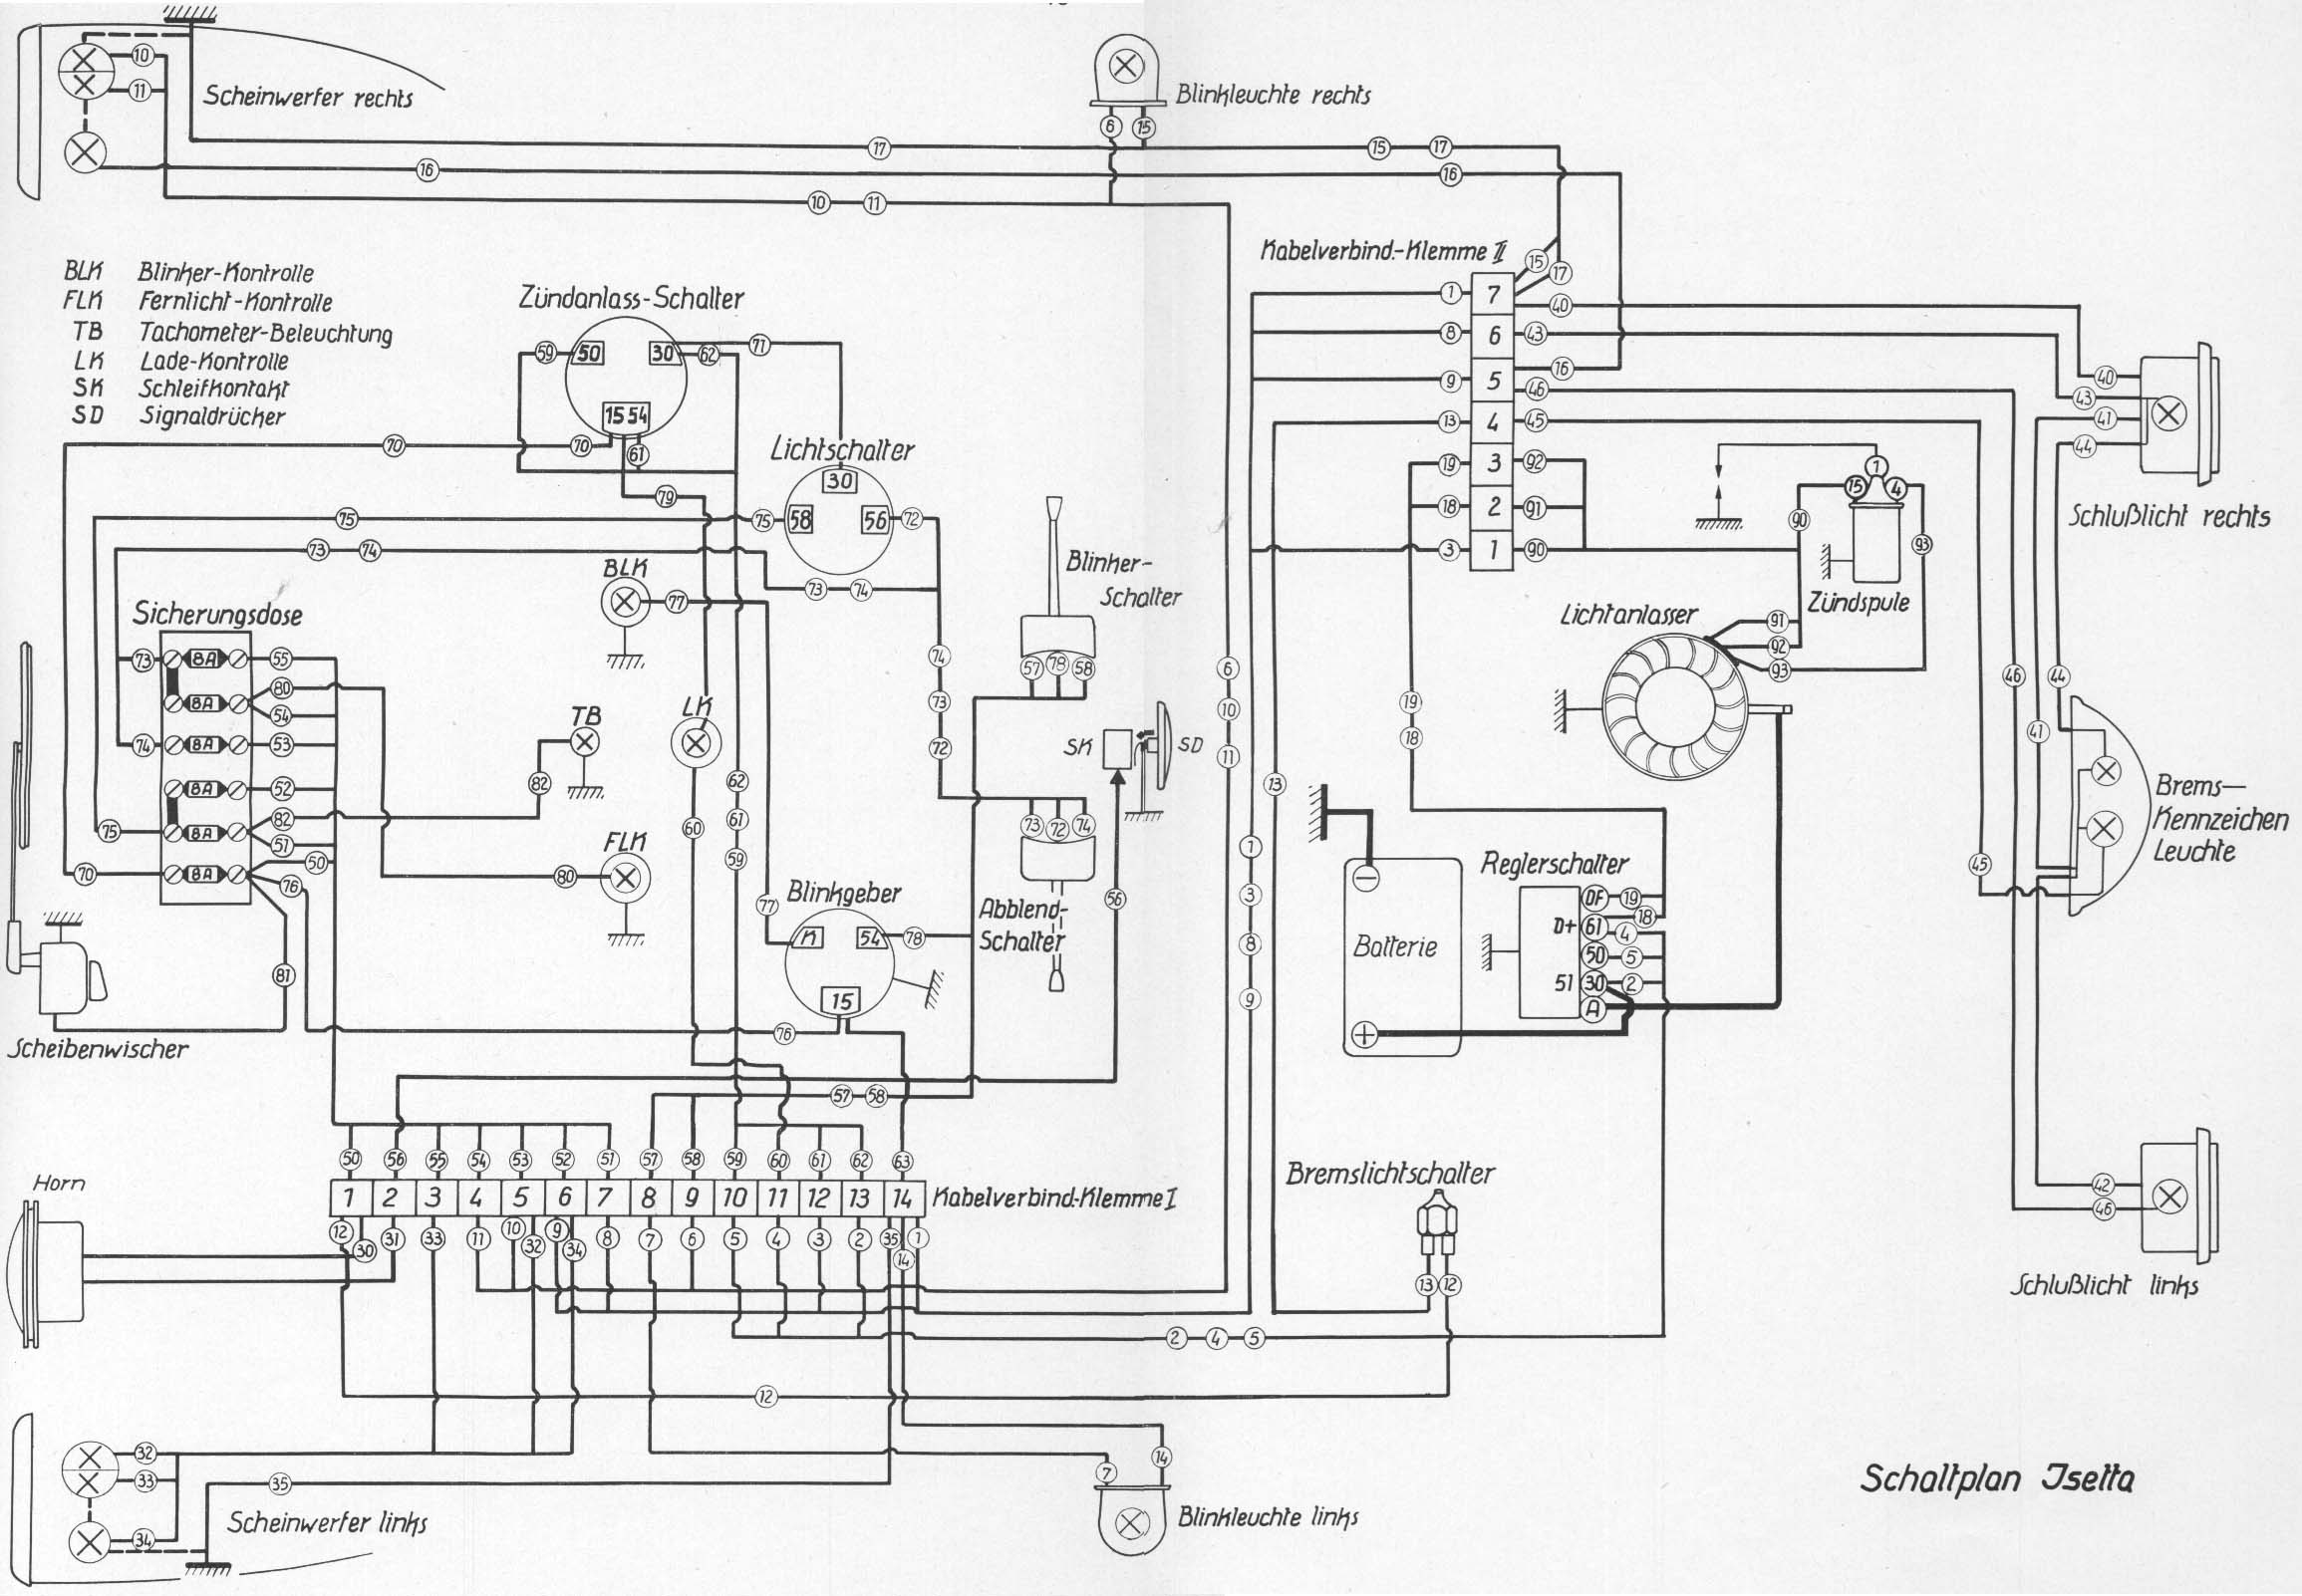 Electrical_Dia_of_300 isettas in south carolina bosch dynastart wiring diagram at mr168.co